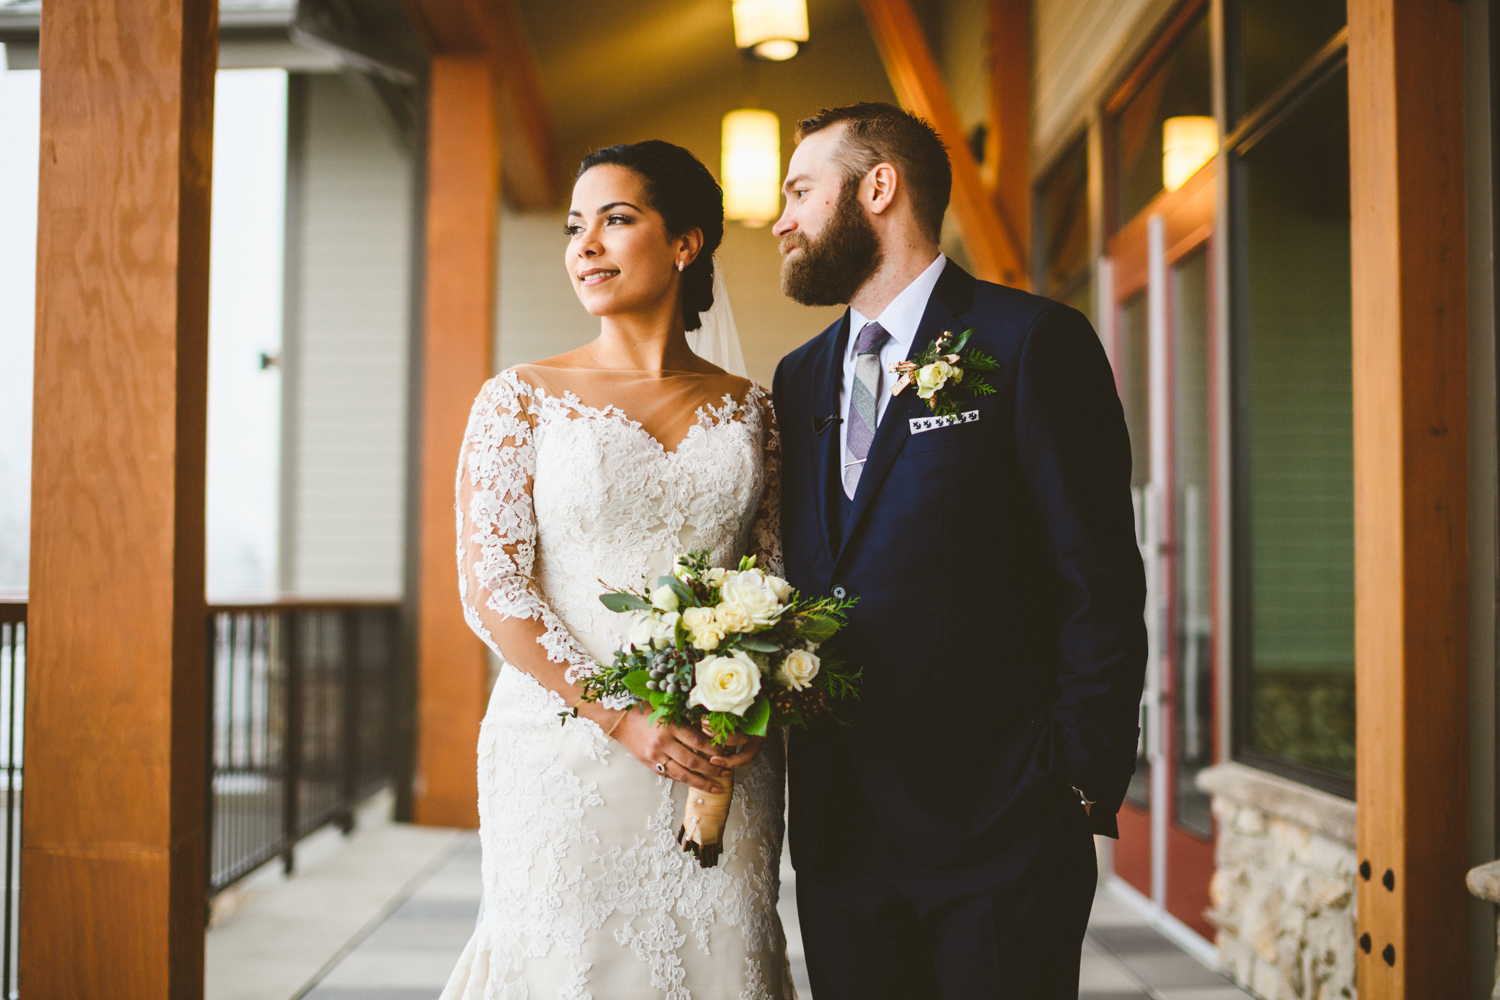 021 - beautiful portrait of bride and groom before their wedding at ski liberty mountain resort in pennsylvania.jpg